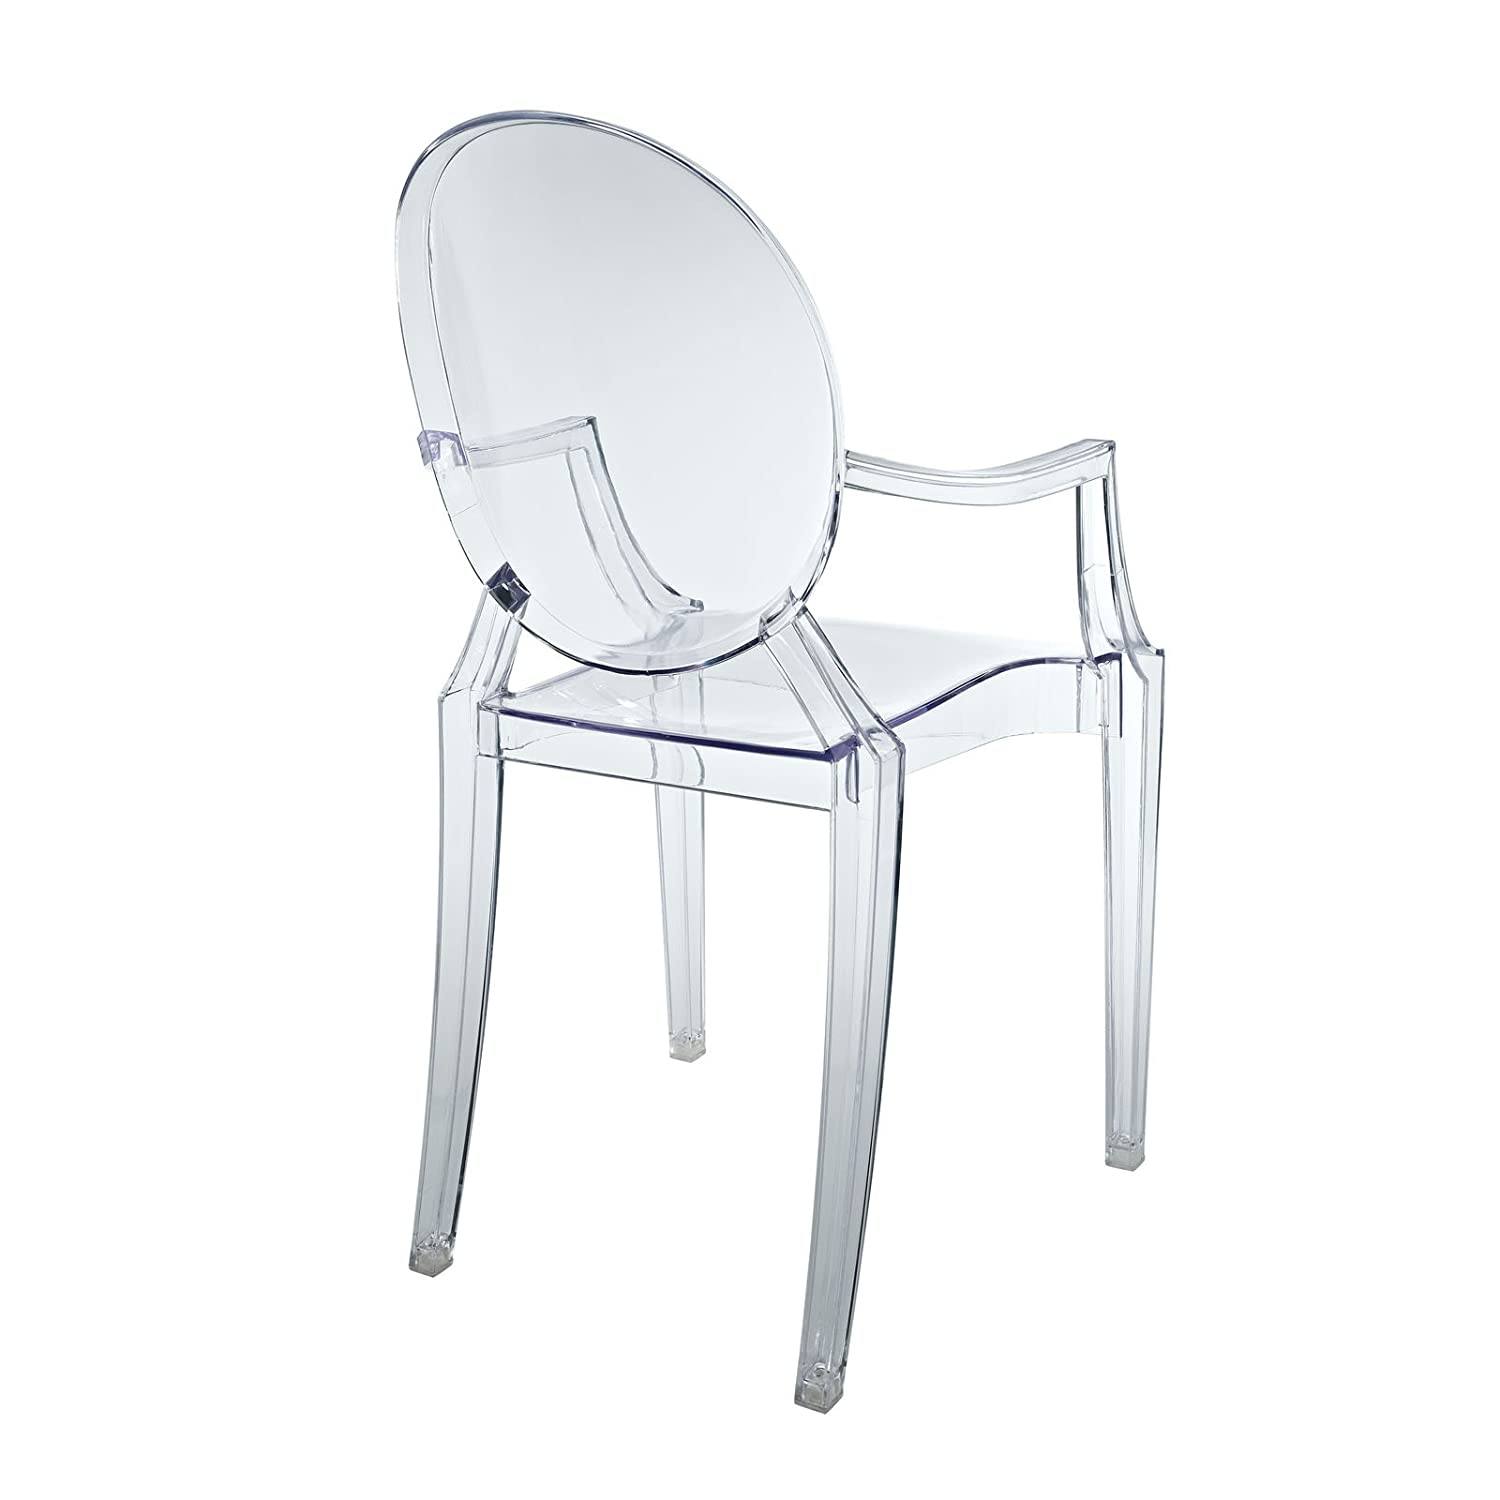 amazoncom modway casper kids chair in clear kitchen  dining -